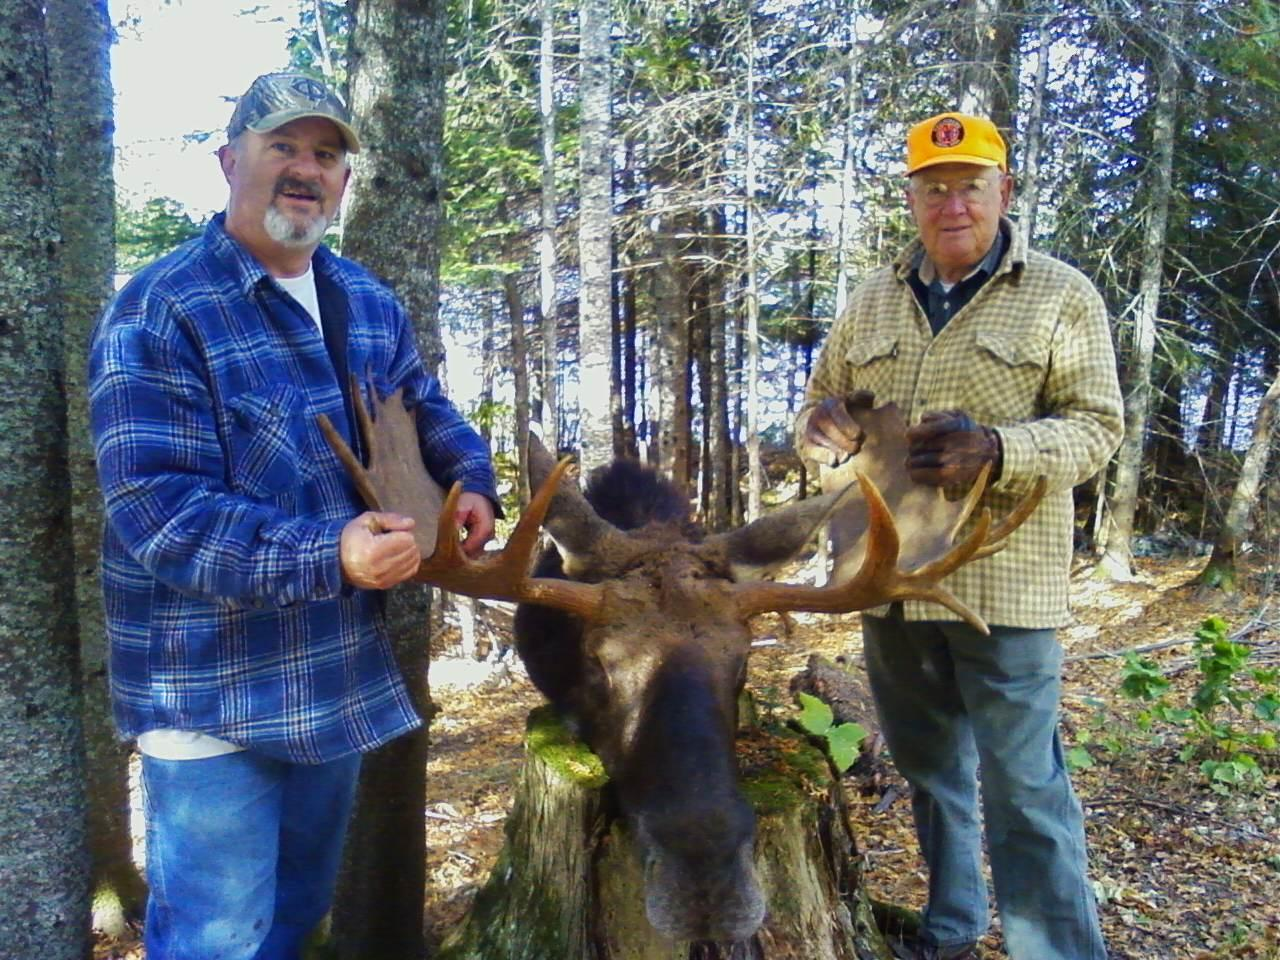 After 40-Year Wait, Octogenarian Gets A Moose License